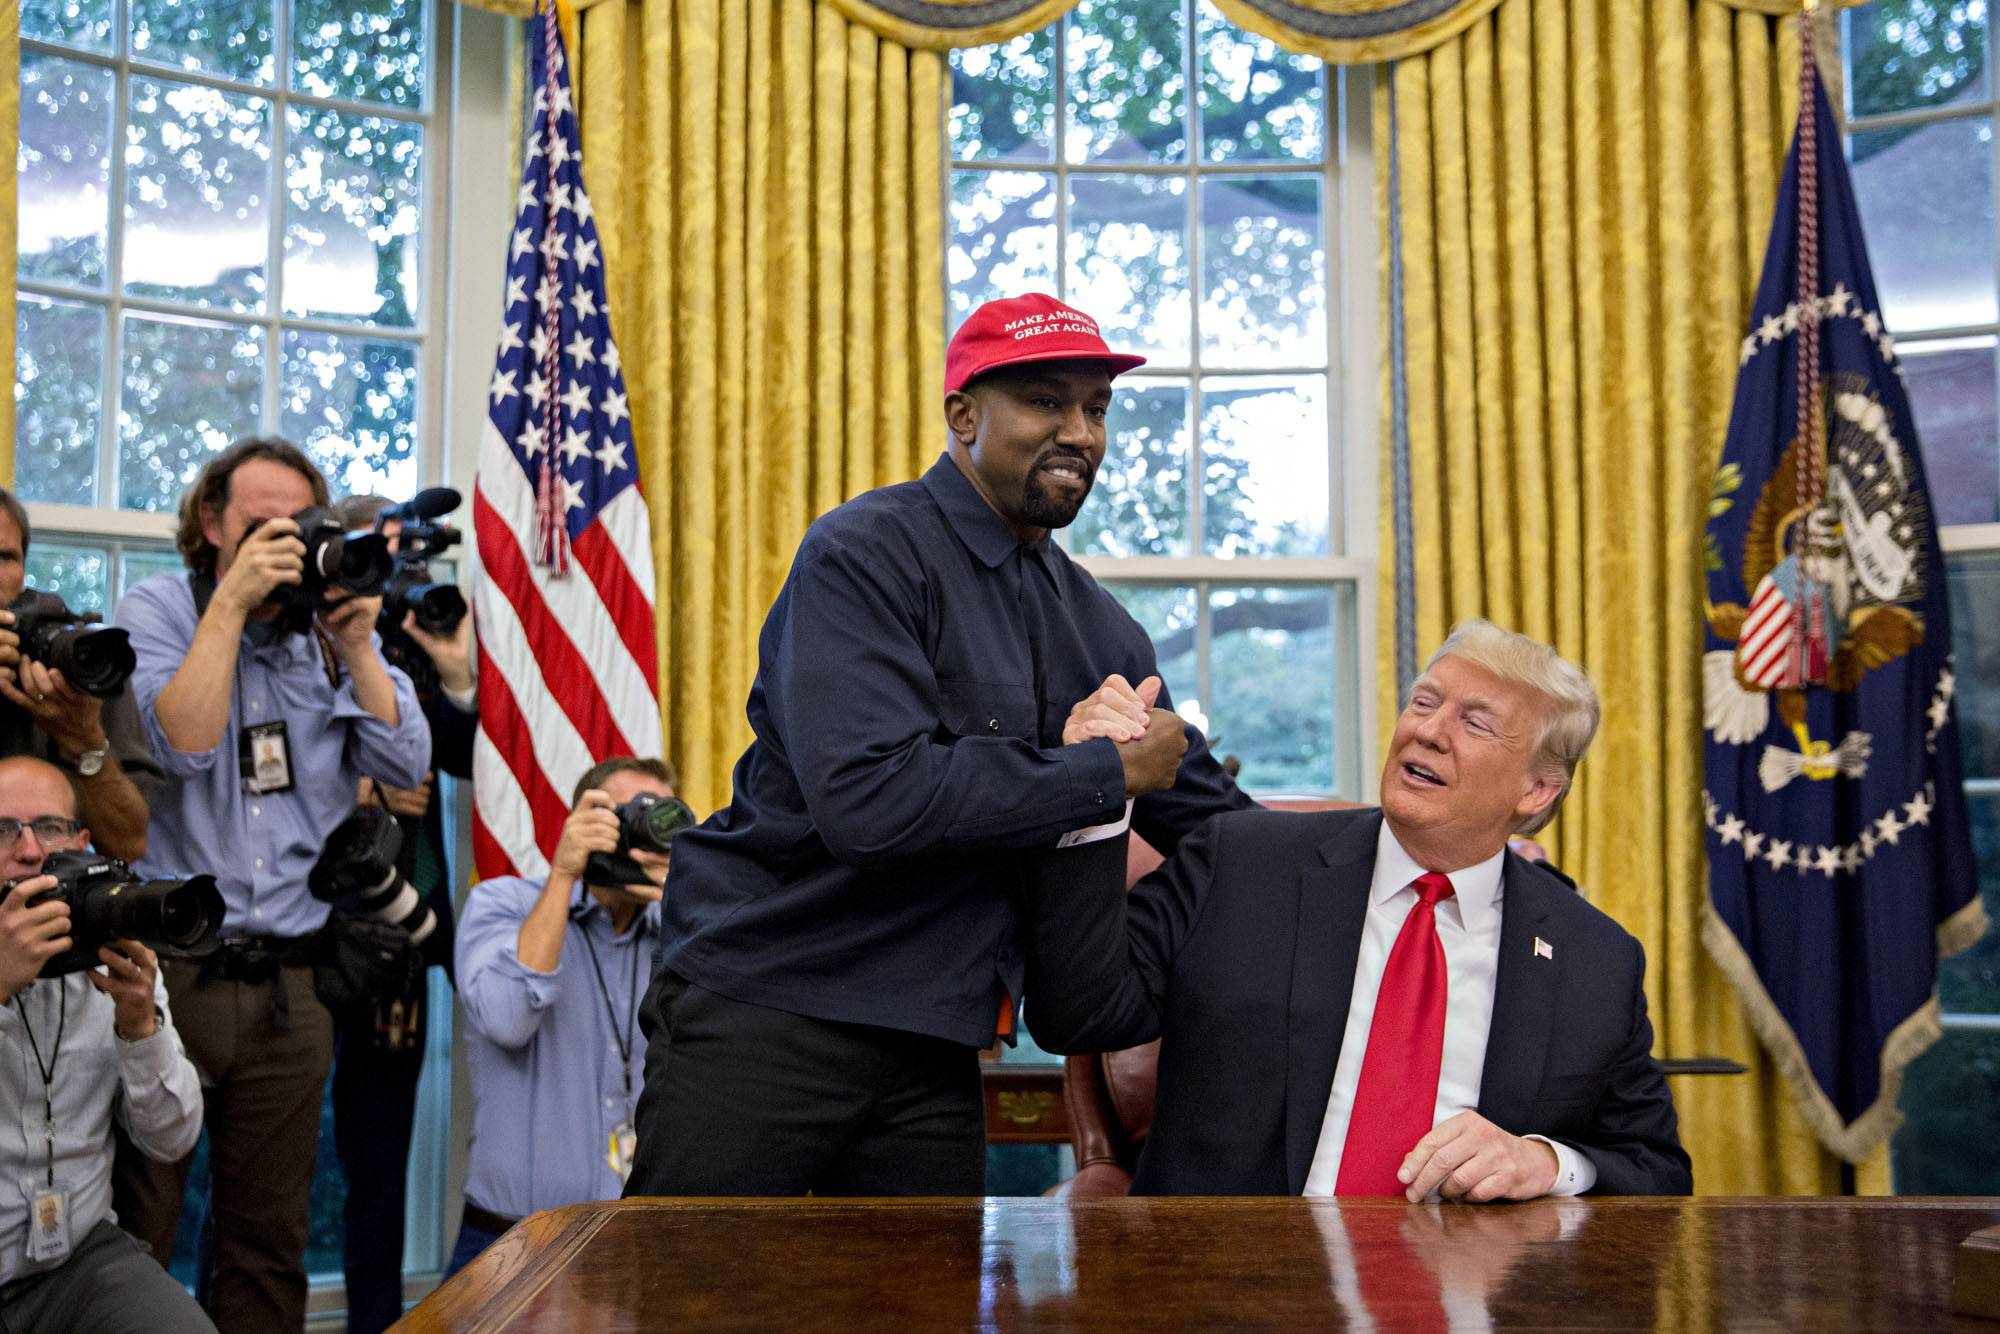 Rapper Kanye West shakes hands with President Donald Trump Thursday during a meeting in the Oval Office in the White House.